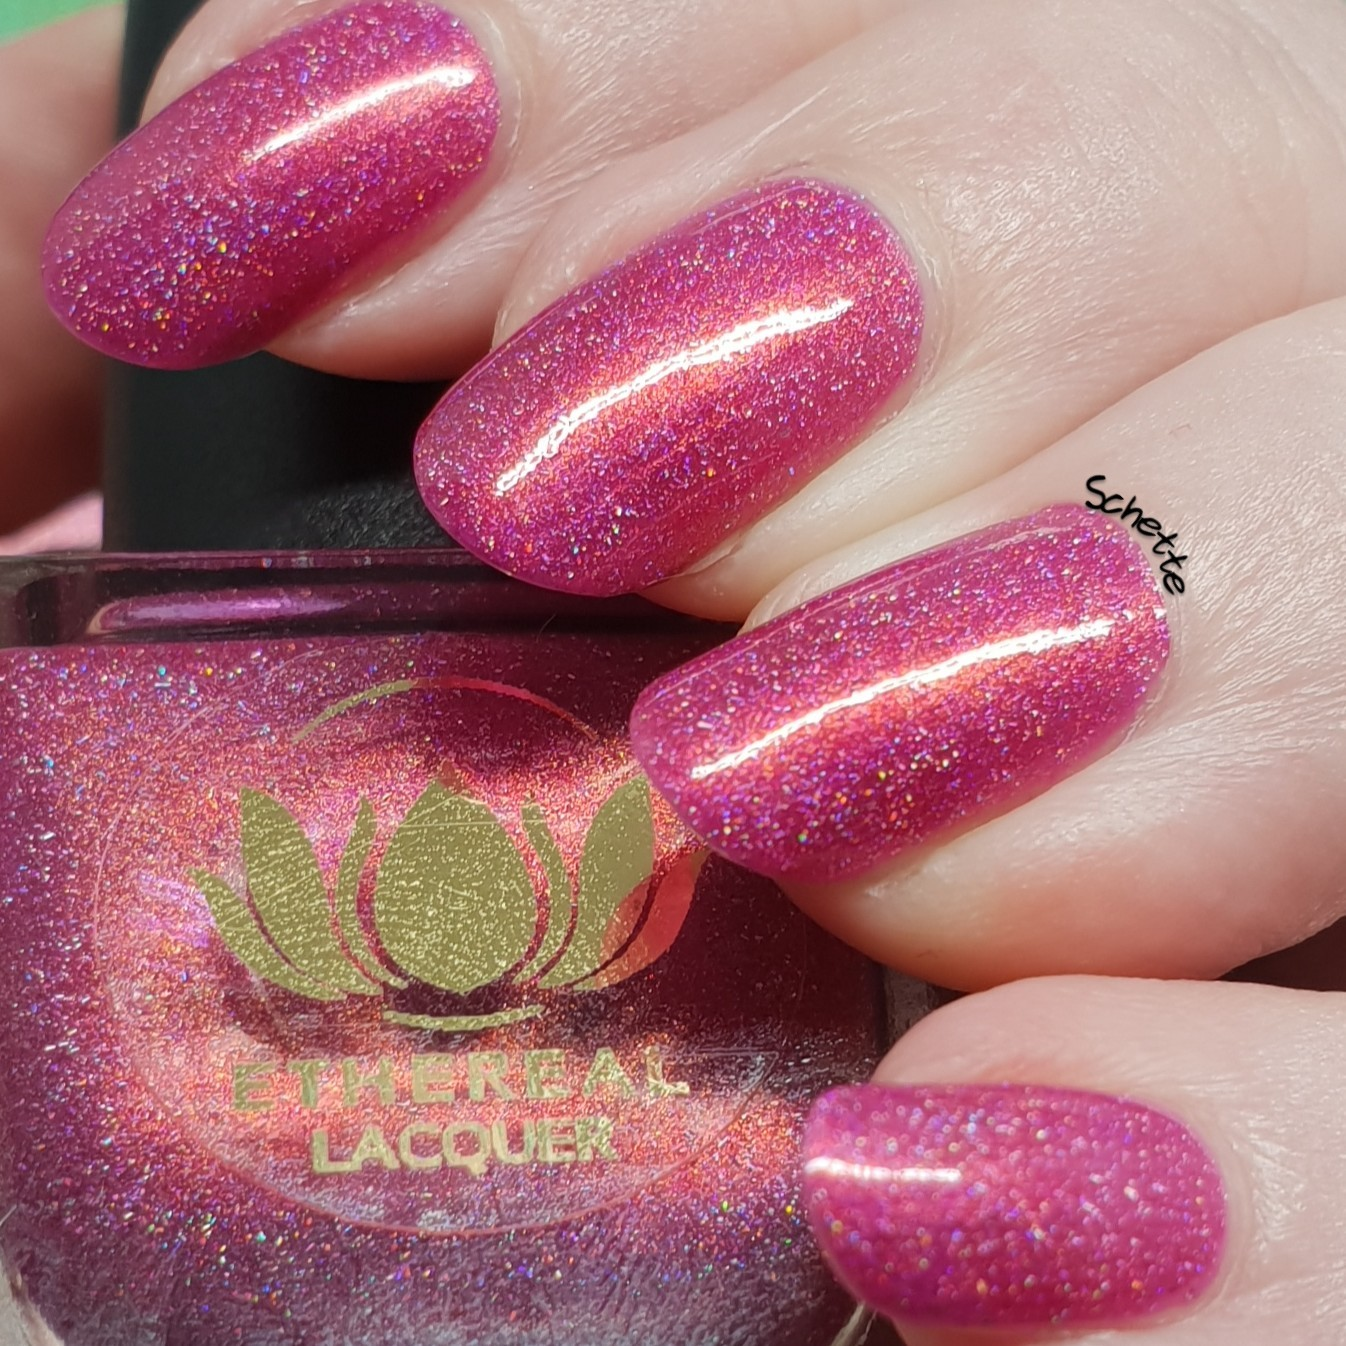 Ethereal Lacquer - Poinsettia